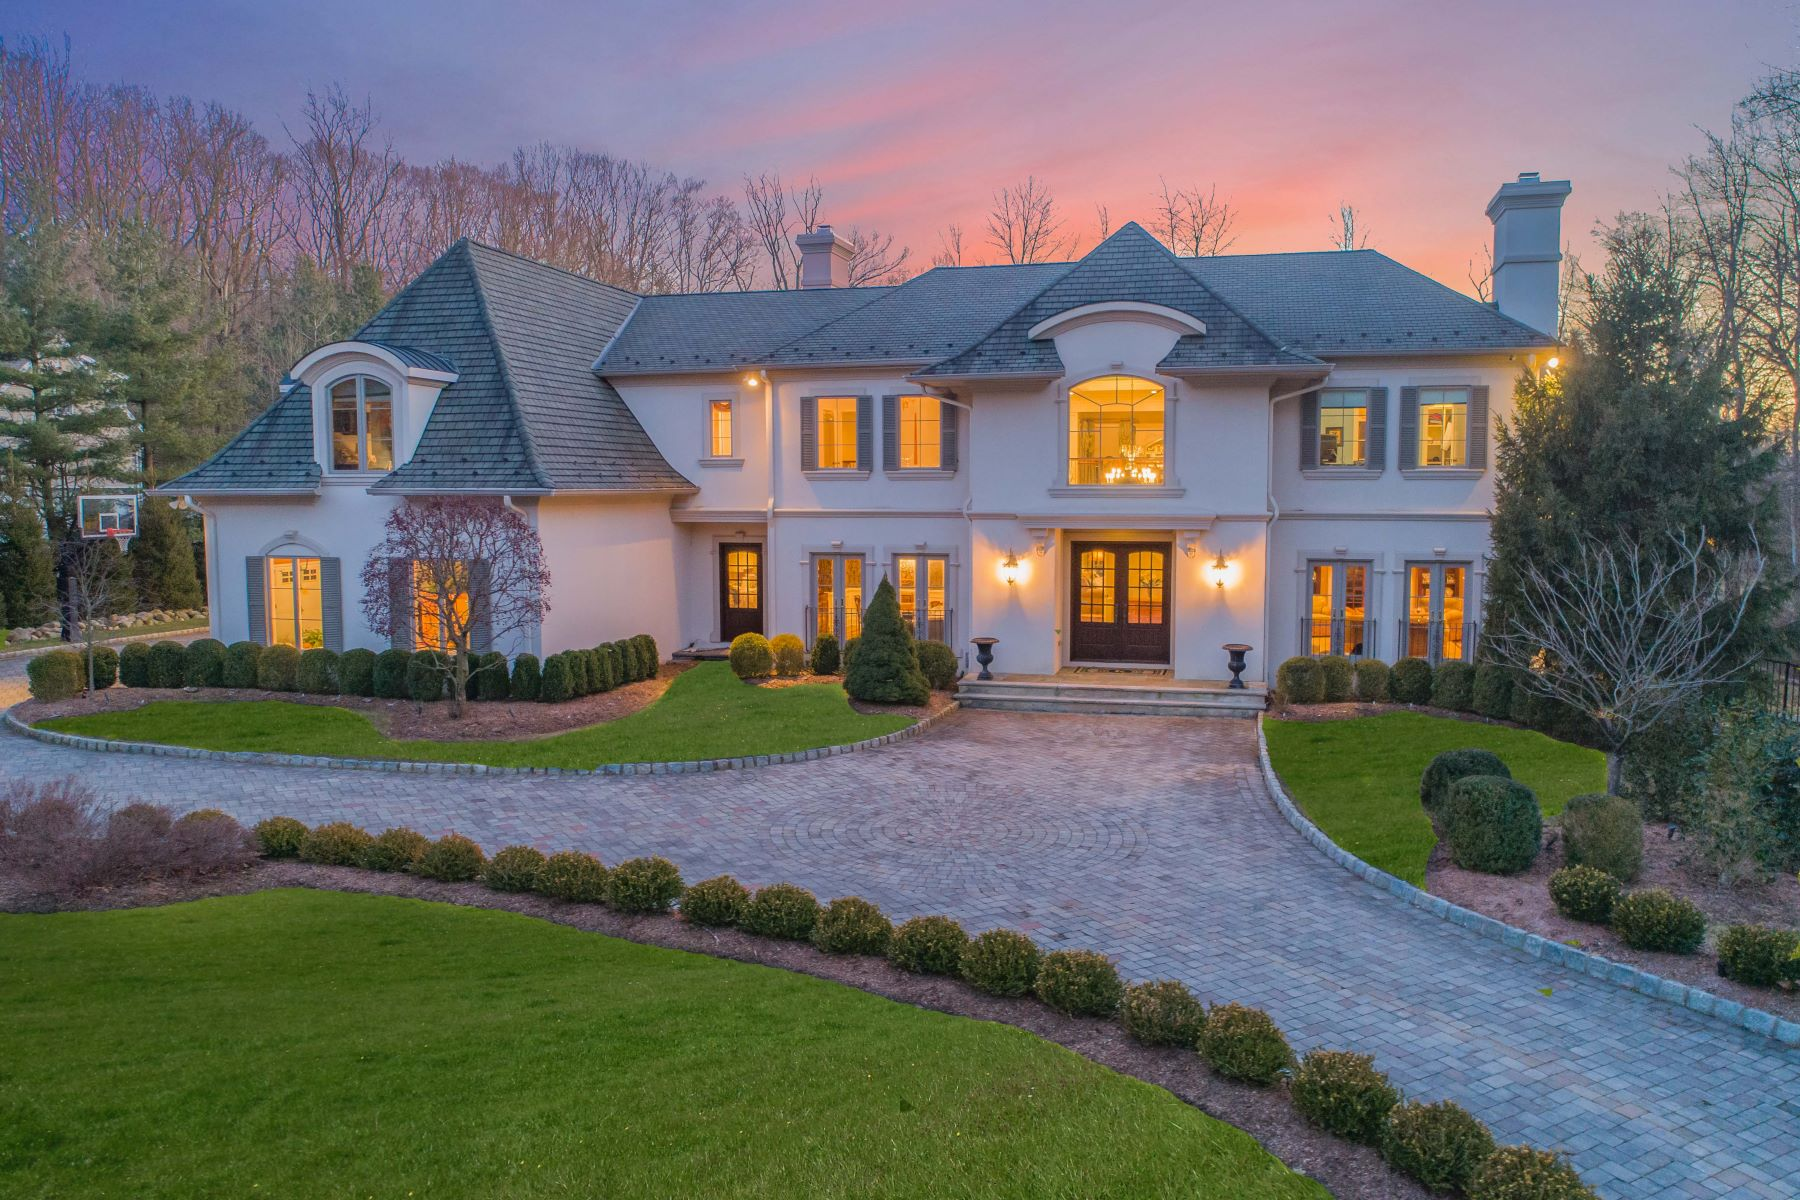 Single Family Home for Sale at Spectacular Estate 80 Glenwood Rd, Upper Saddle River, New Jersey 07458 United States